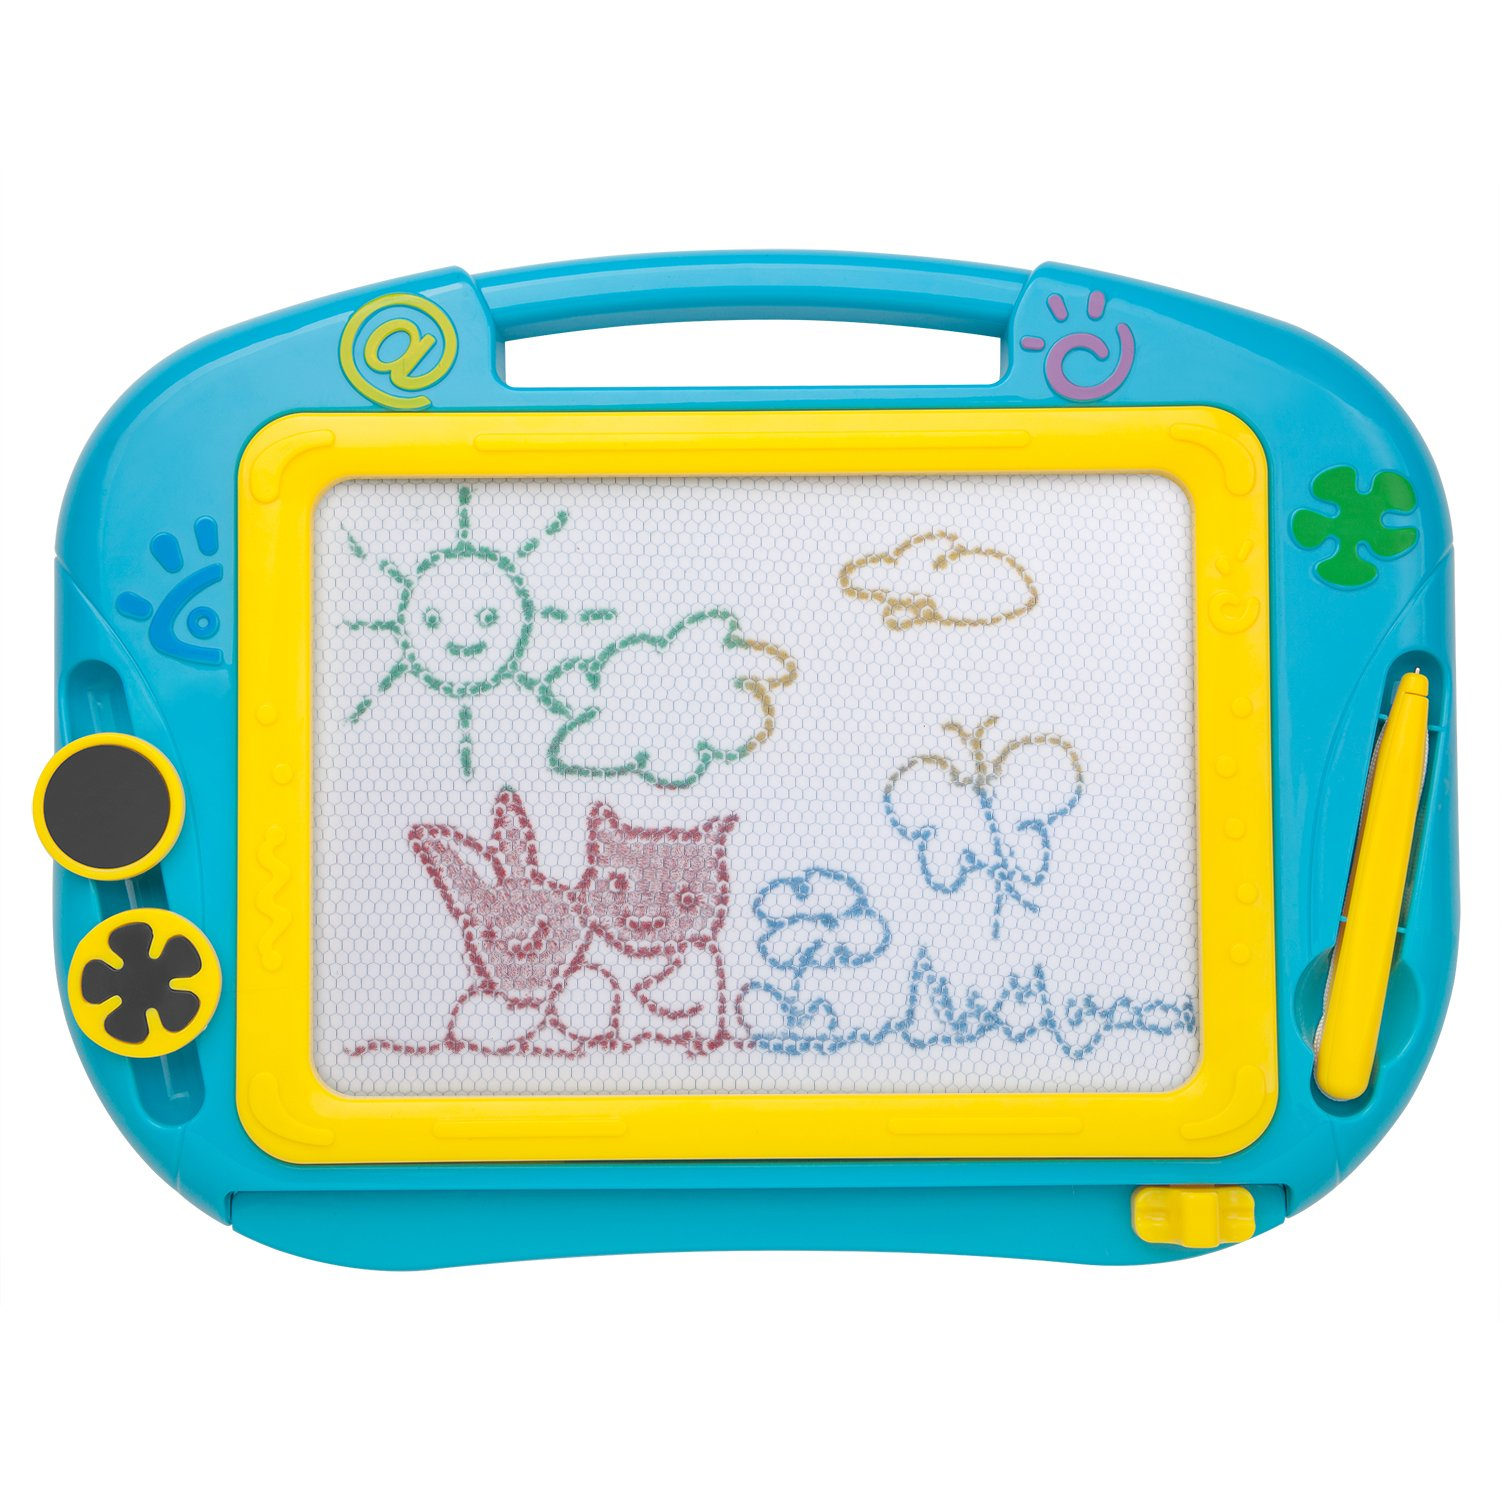 ikidsislands IKS88B [Travel Size] Color Magnetic Drawing Board Kids & Toddlers - Non Toxic Mini Magna Sketch Doodle Educational Toy Boys 1 Pen & 2 Stamps (Blue)